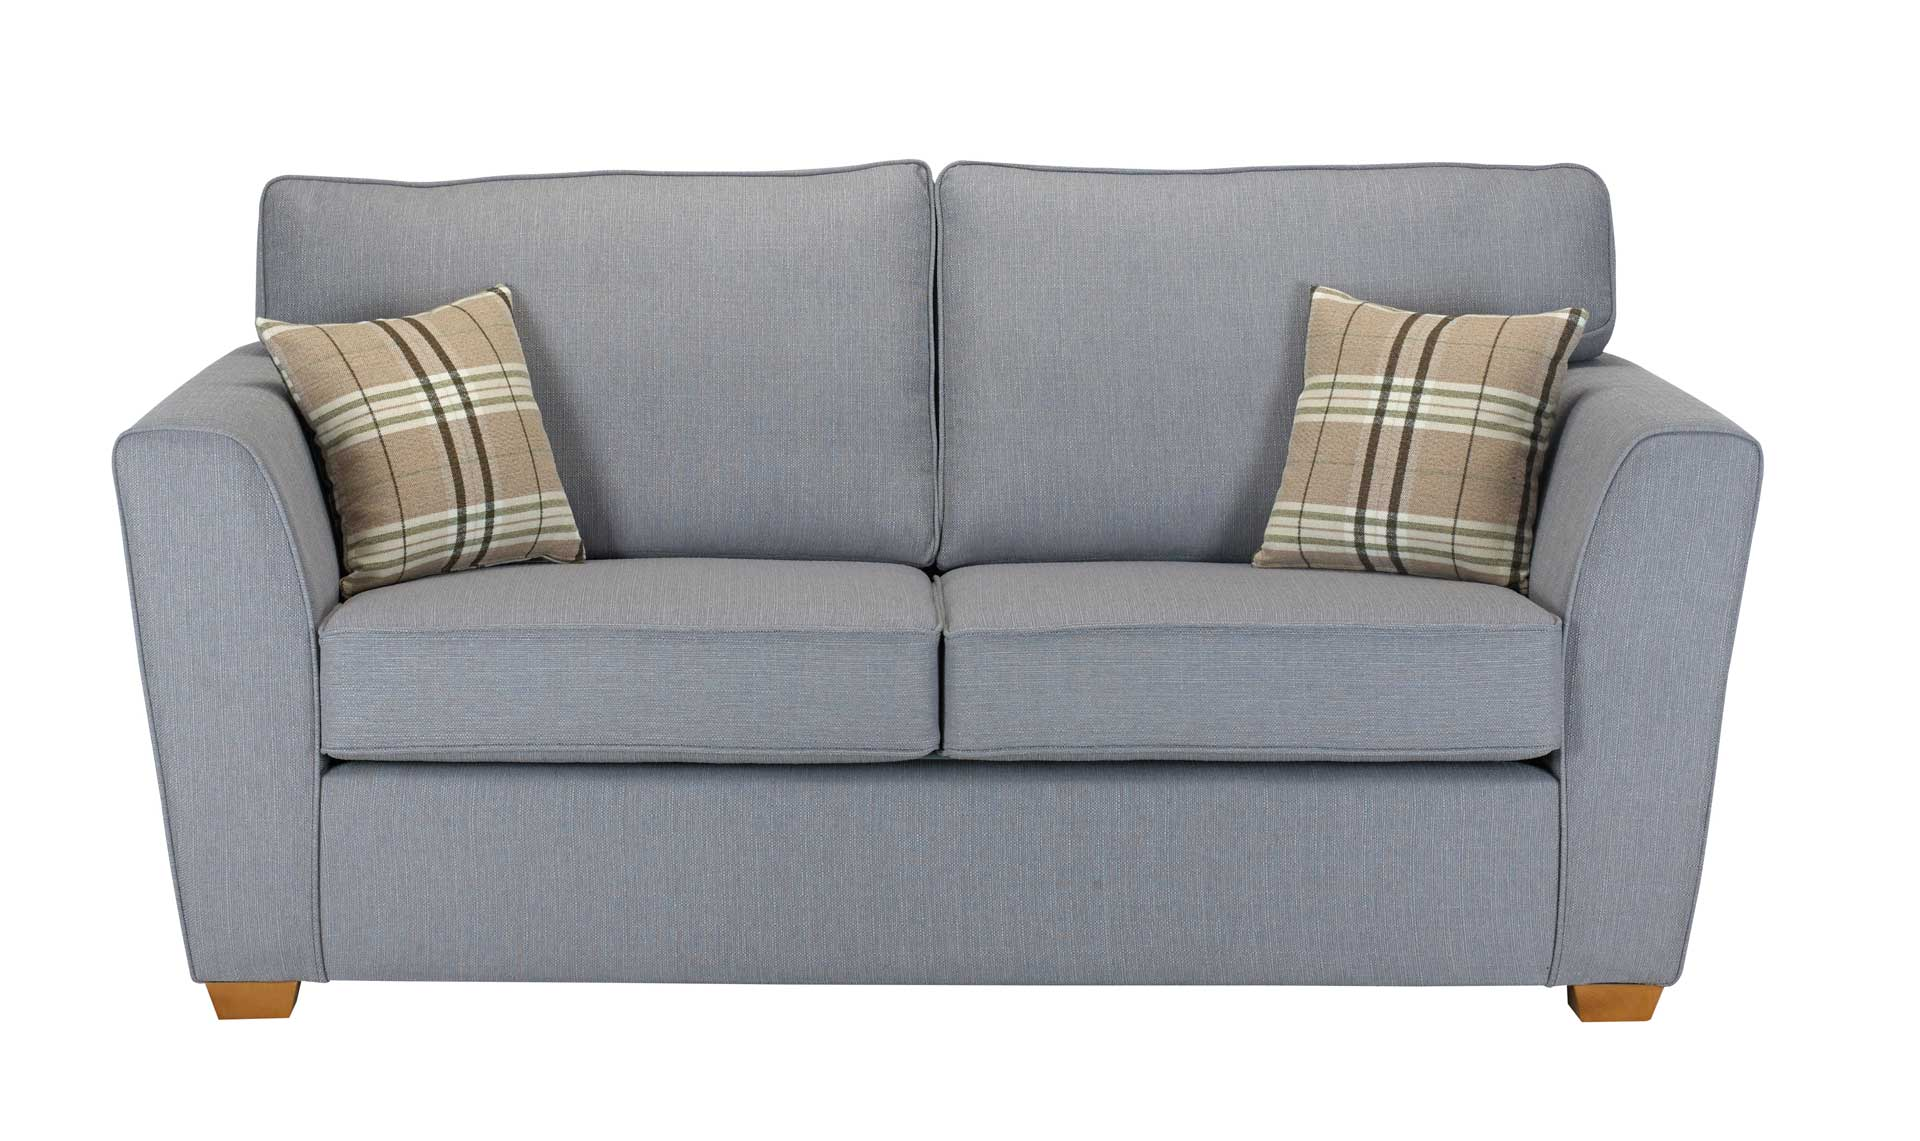 Bluebell 3 Seater Sofa - available as a chaise, 3 seater, 2 seater and chair.